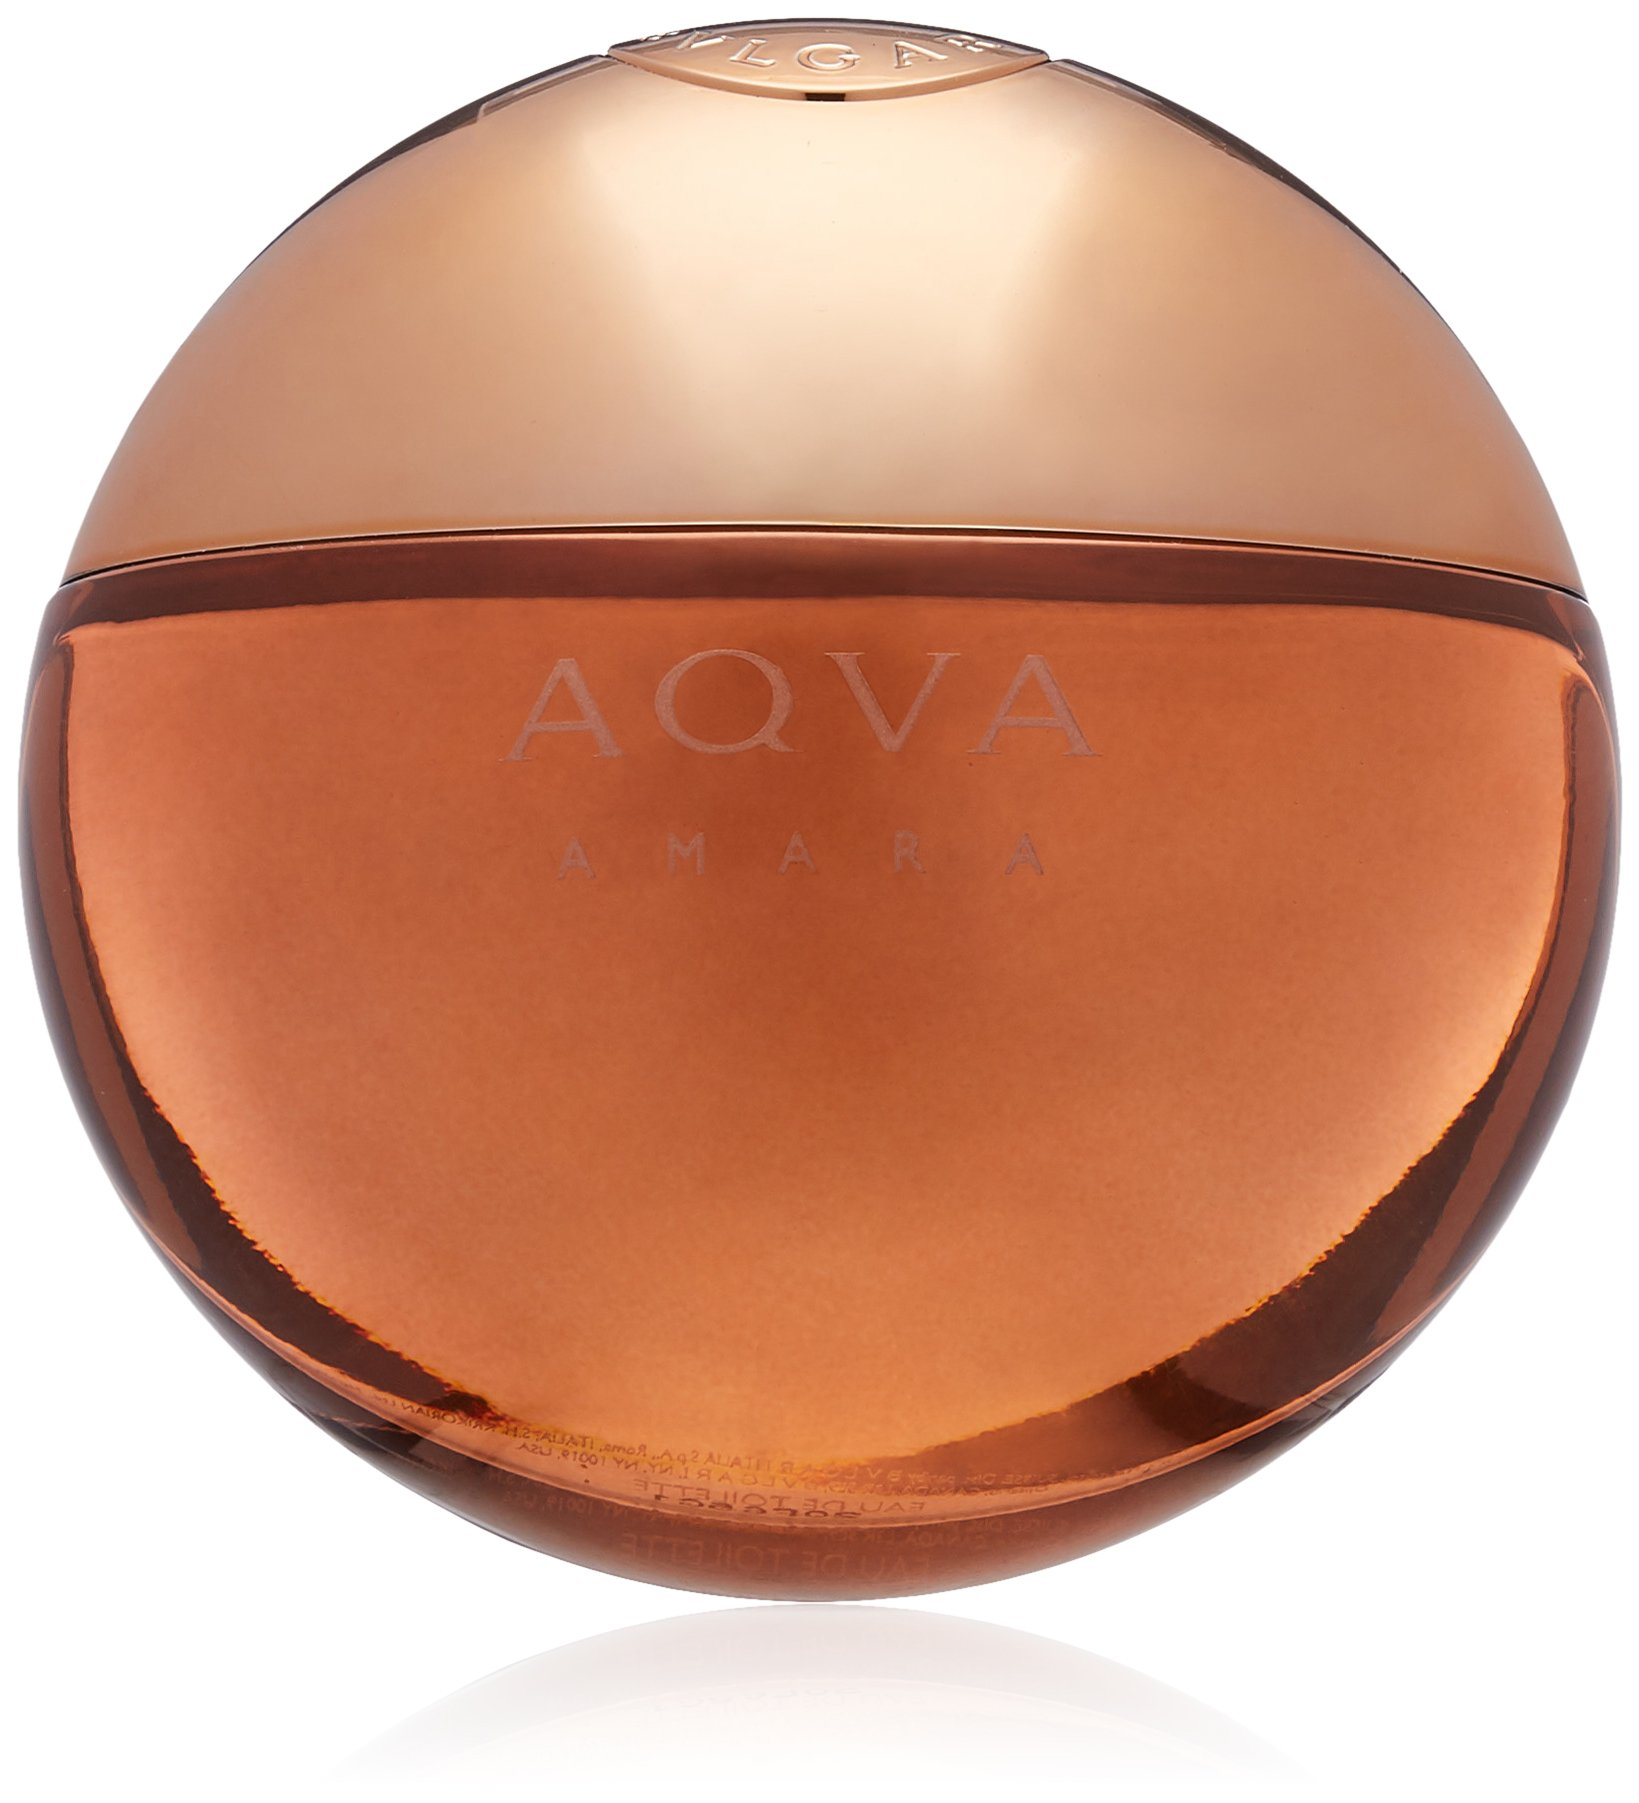 Bvlgari Aqva Atlantiqve Eau De Toilette Spray 33 Man Edt 100ml Amara For Men 34 Ounce